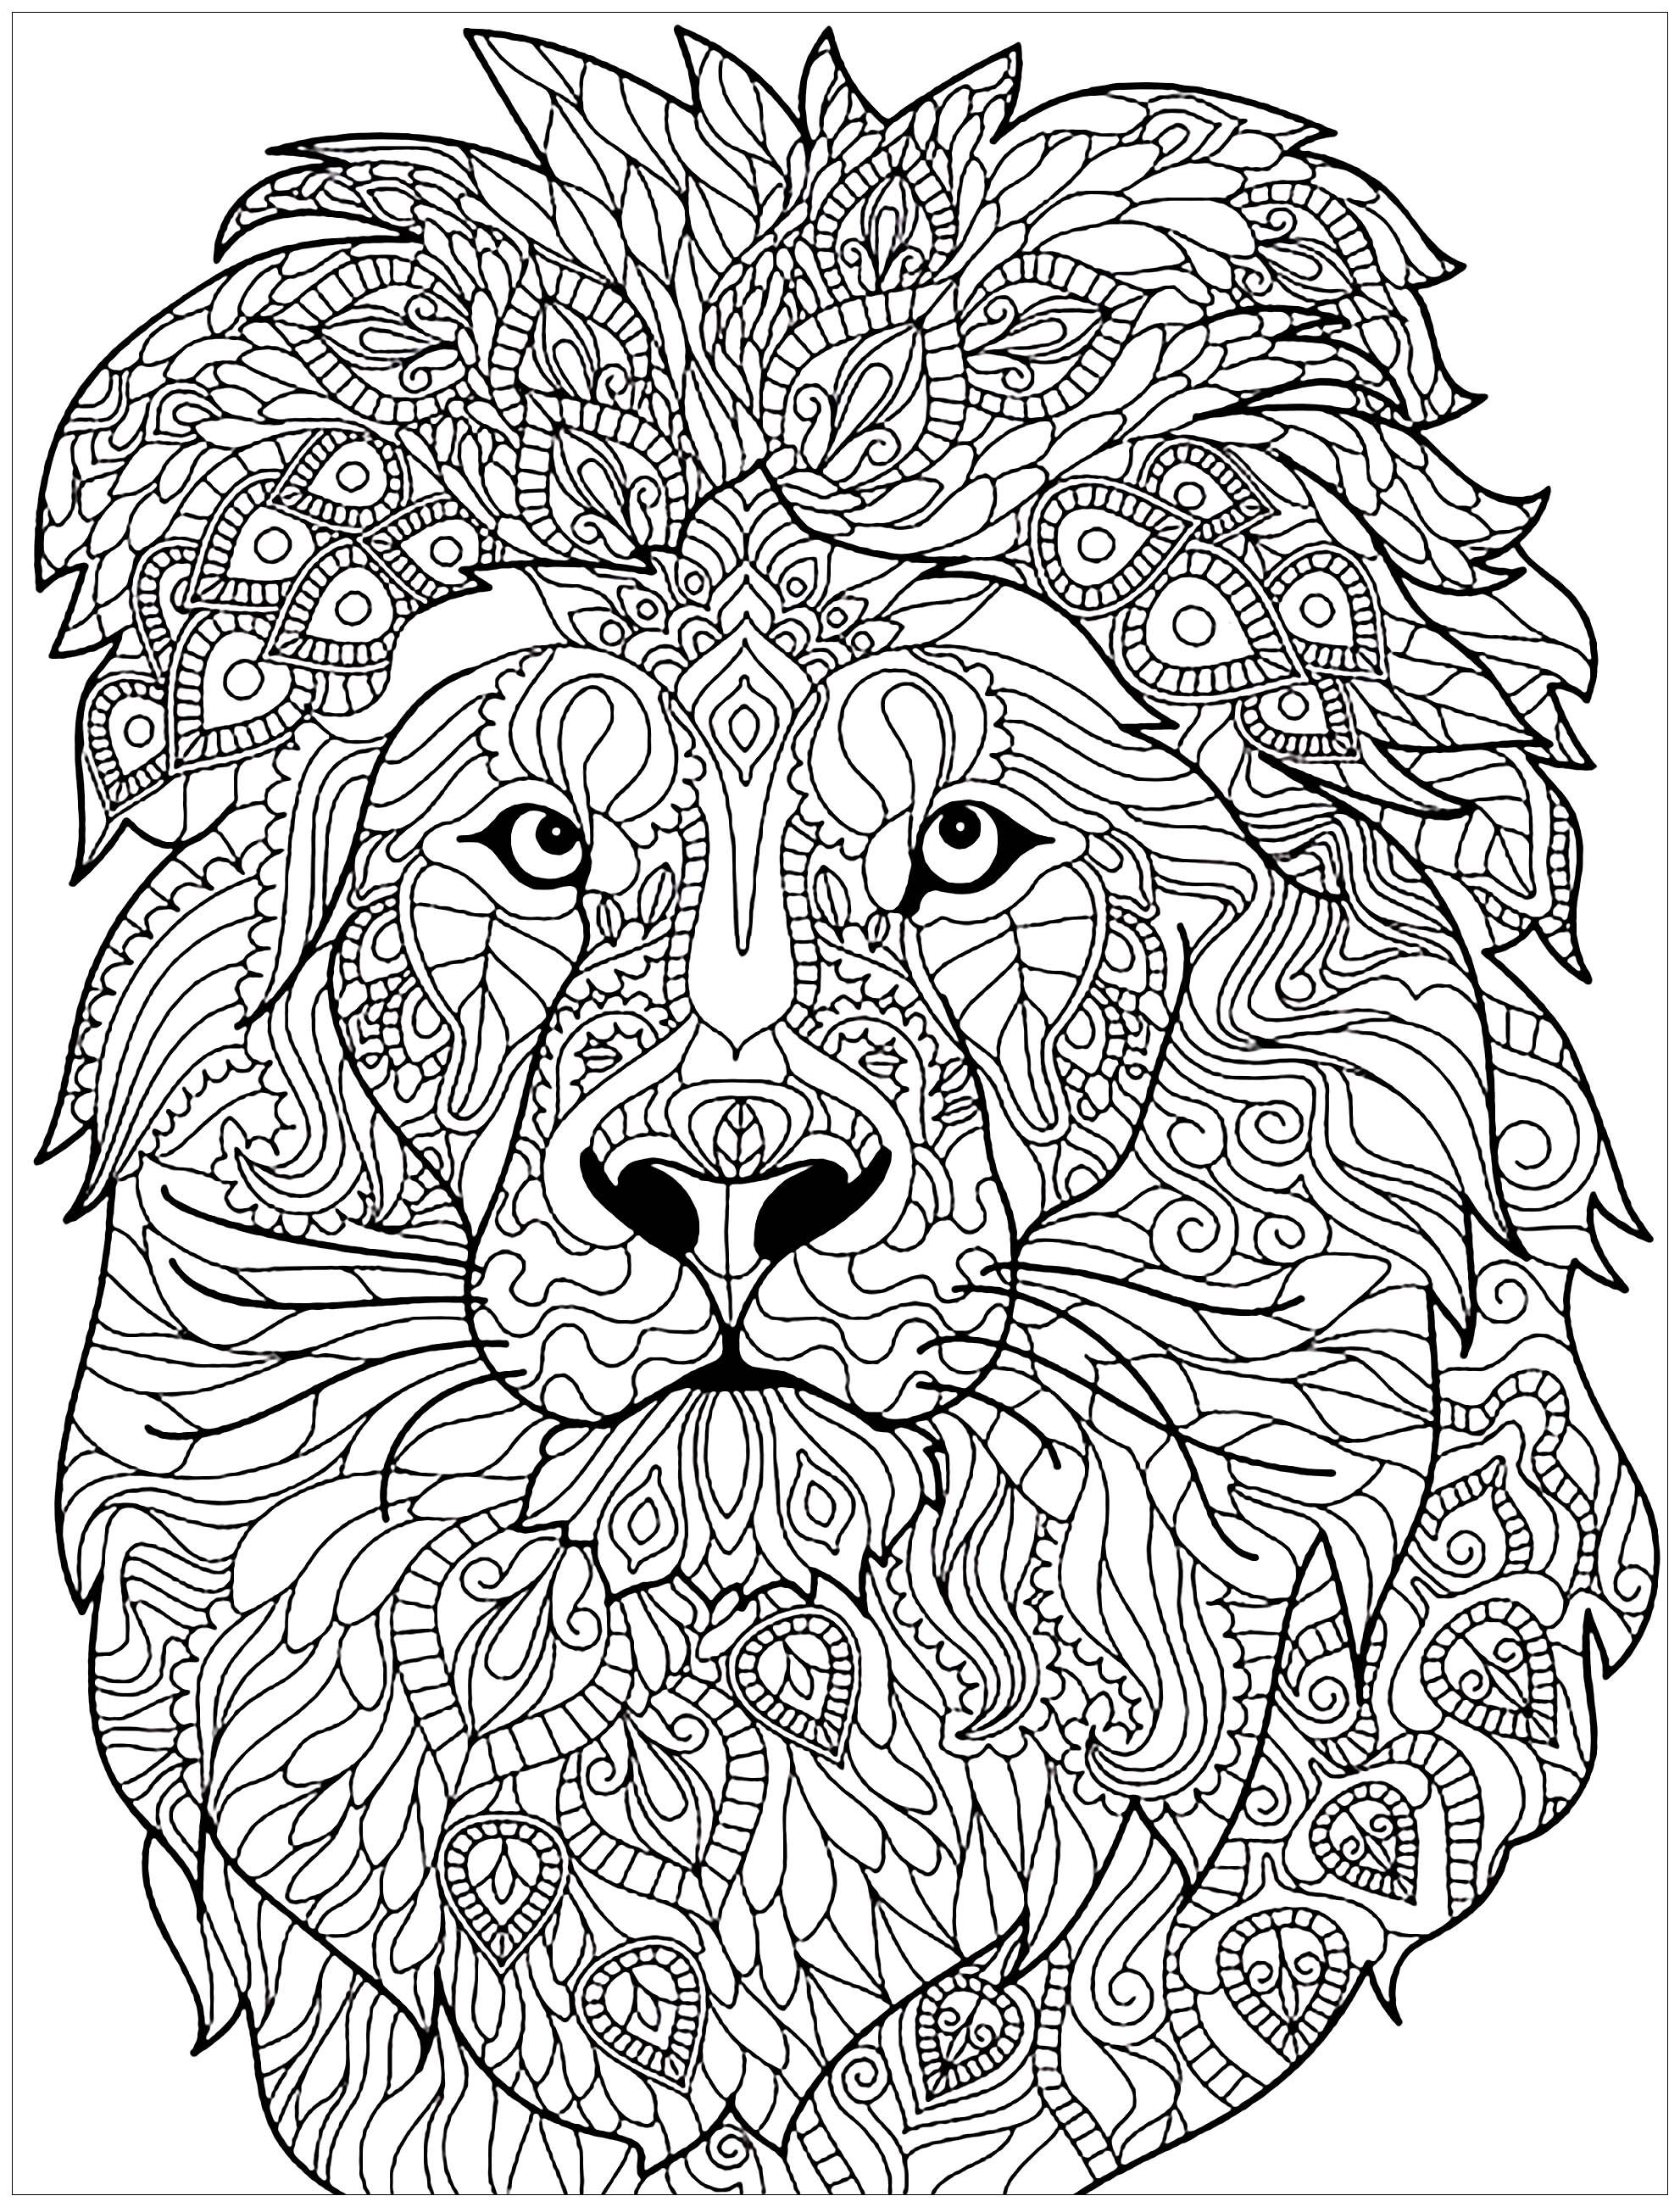 Lion Complex Patterns Lions Coloring Pages For Adults Just